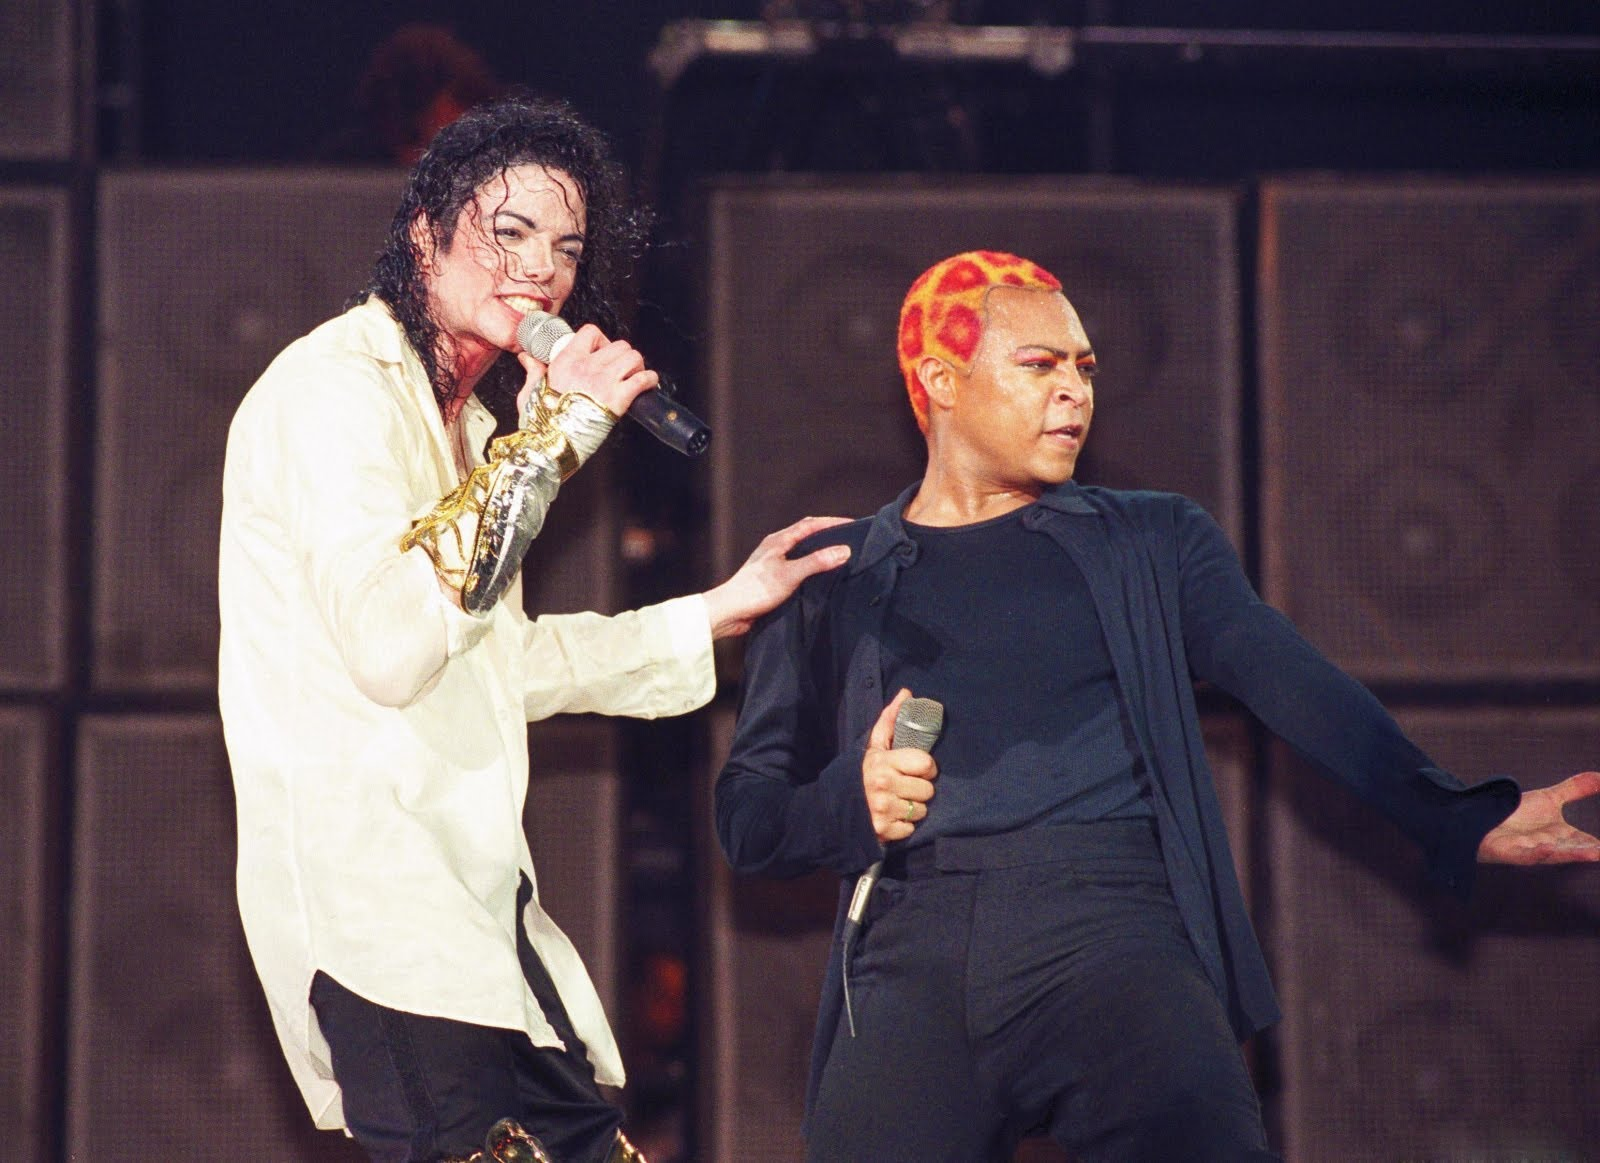 Michael Jackson e LaVelle Smith Jr no palco